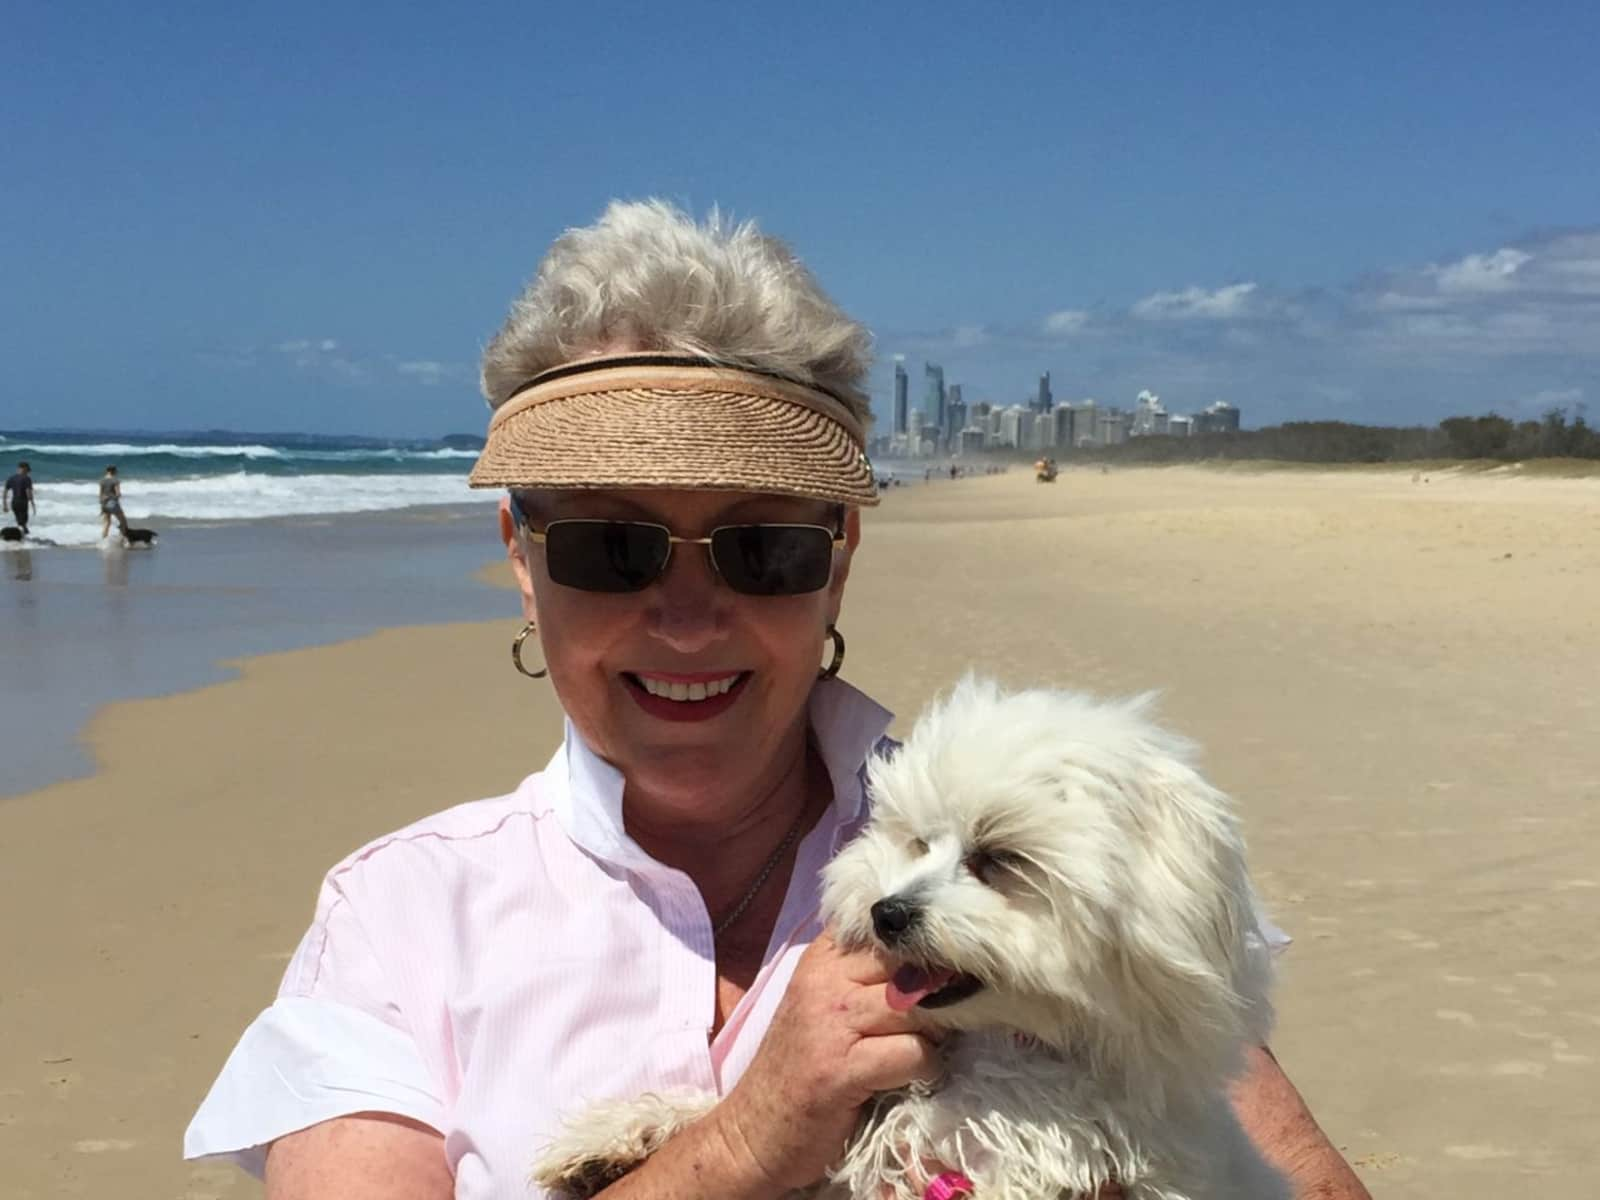 Ruth from Sydney, New South Wales, Australia